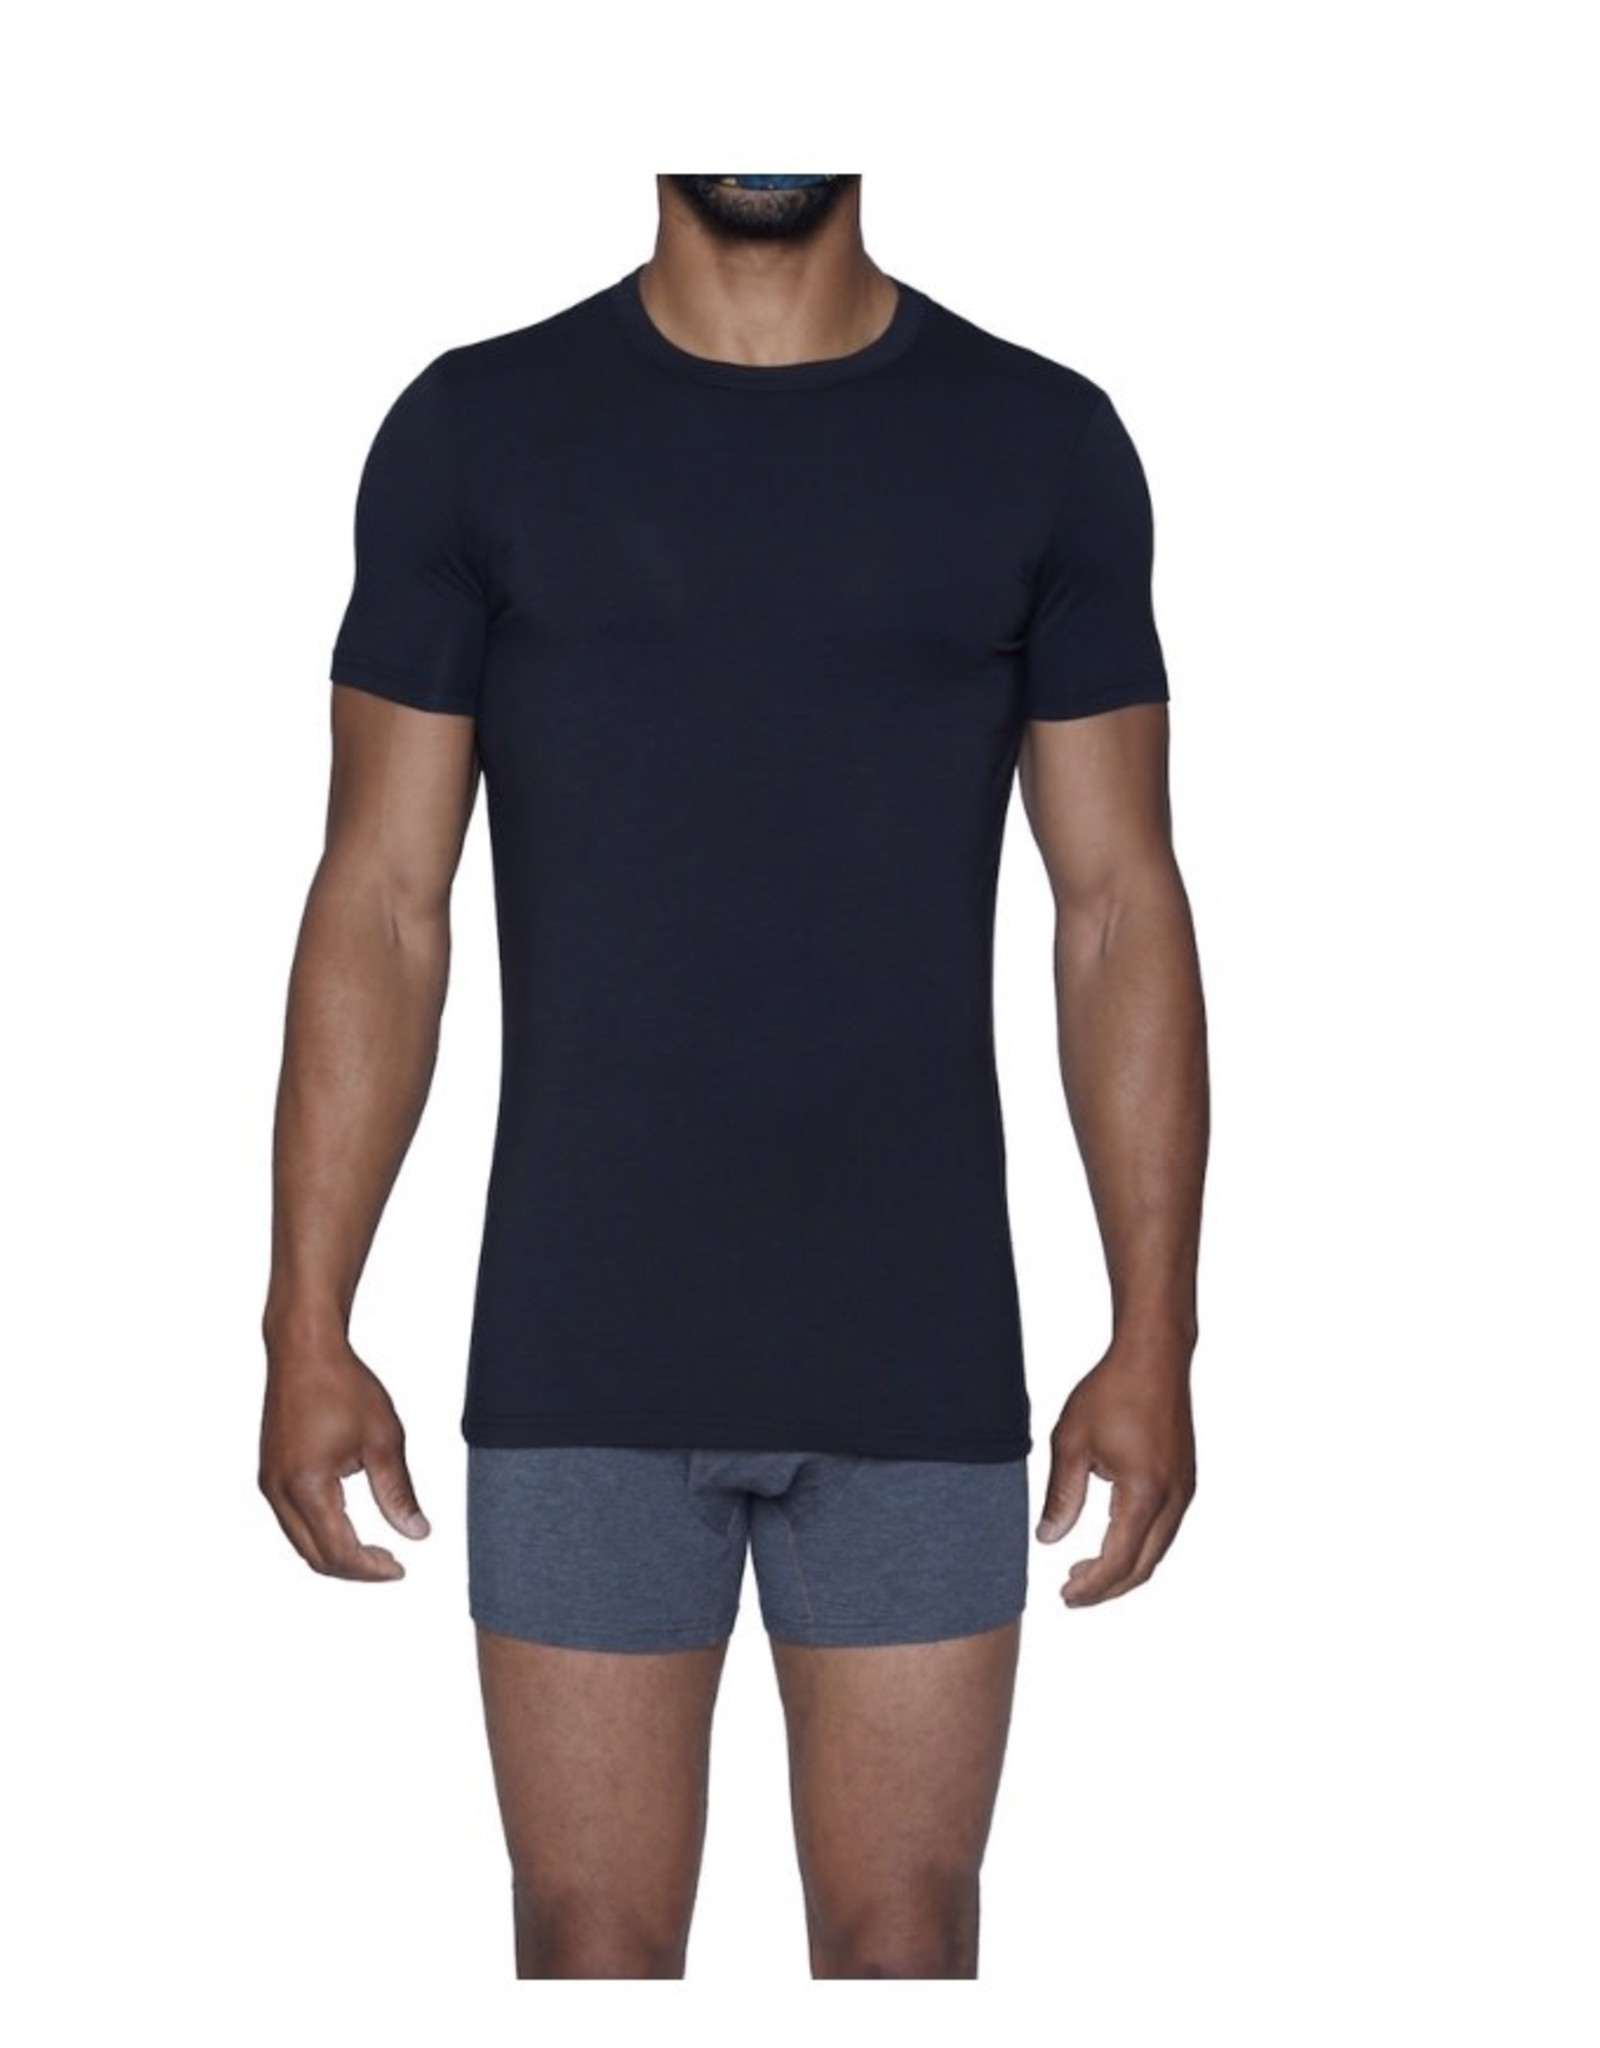 Wood Underwear WD Crew Neck T-Shirt